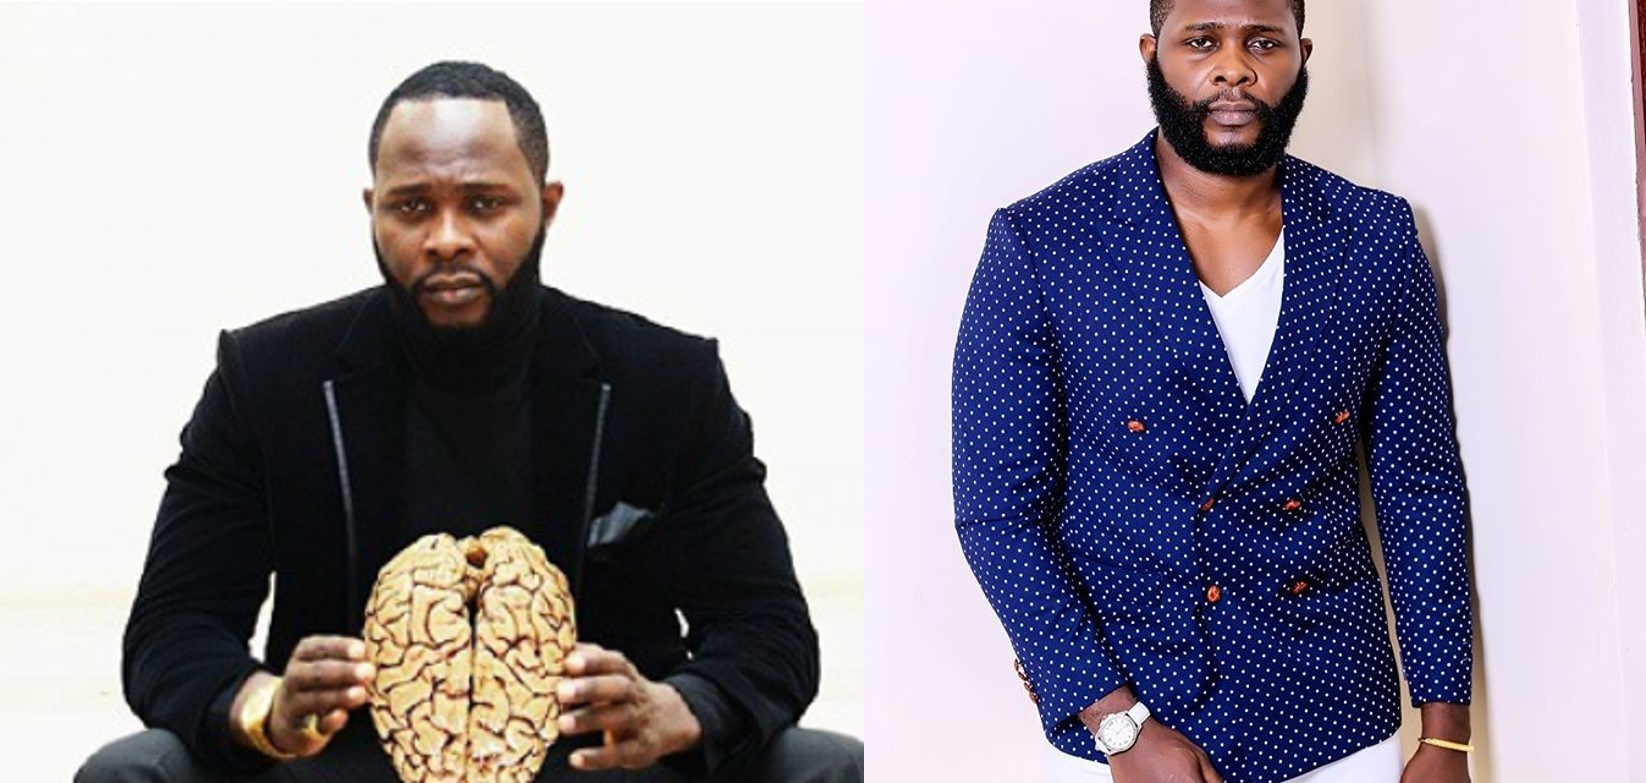 Break up with your girlfriend if she does 5 of these things – Joro Olumofin lists 20 things guys should look at in a relationship